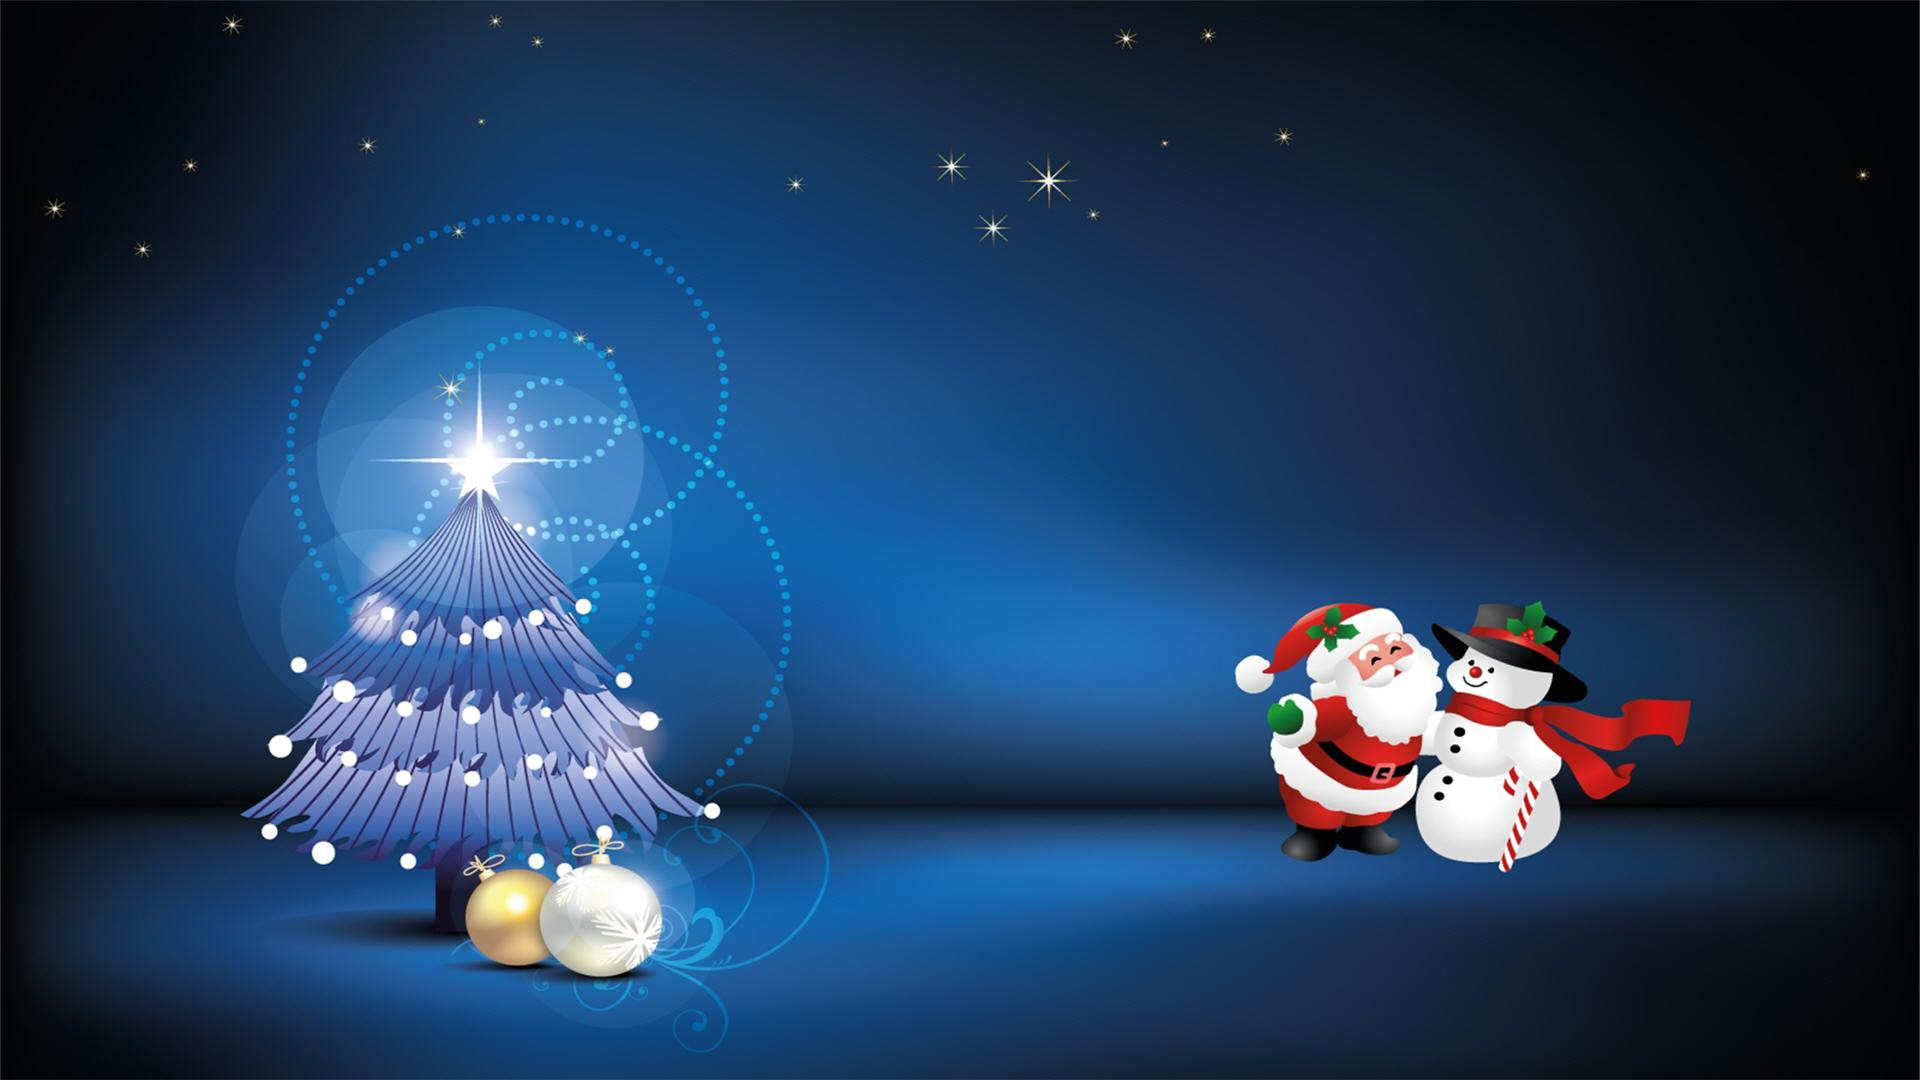 Christmas Wallpapers for Desktop Hd Christmas Wallpapers for Desktop 1920x1080